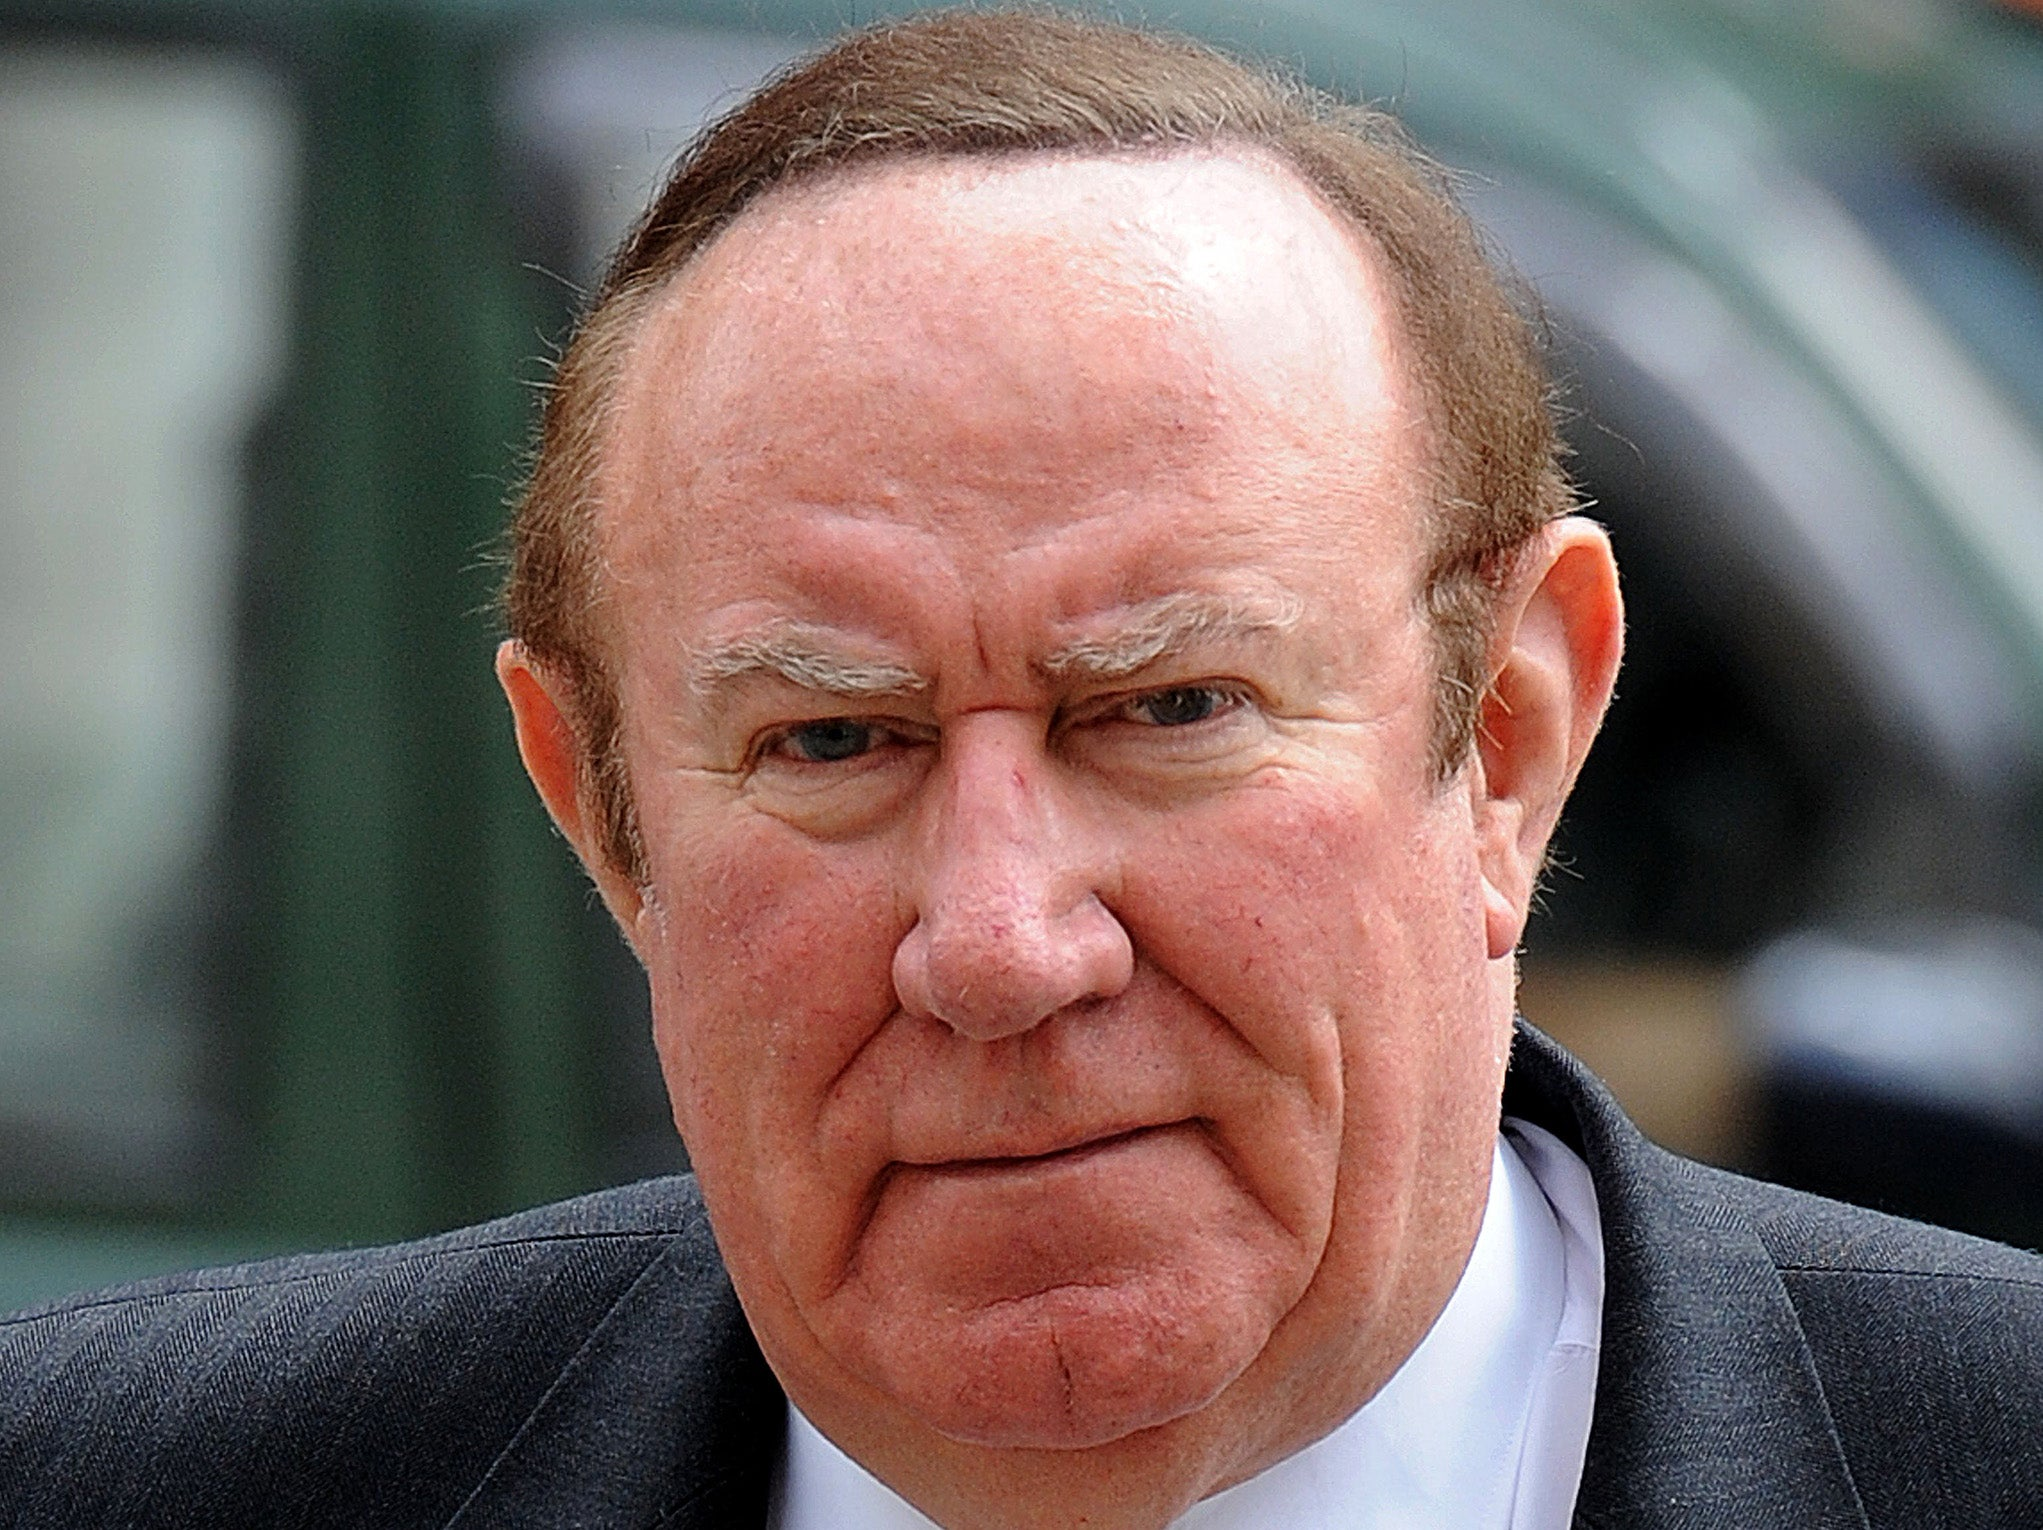 andrew neil - photo #4